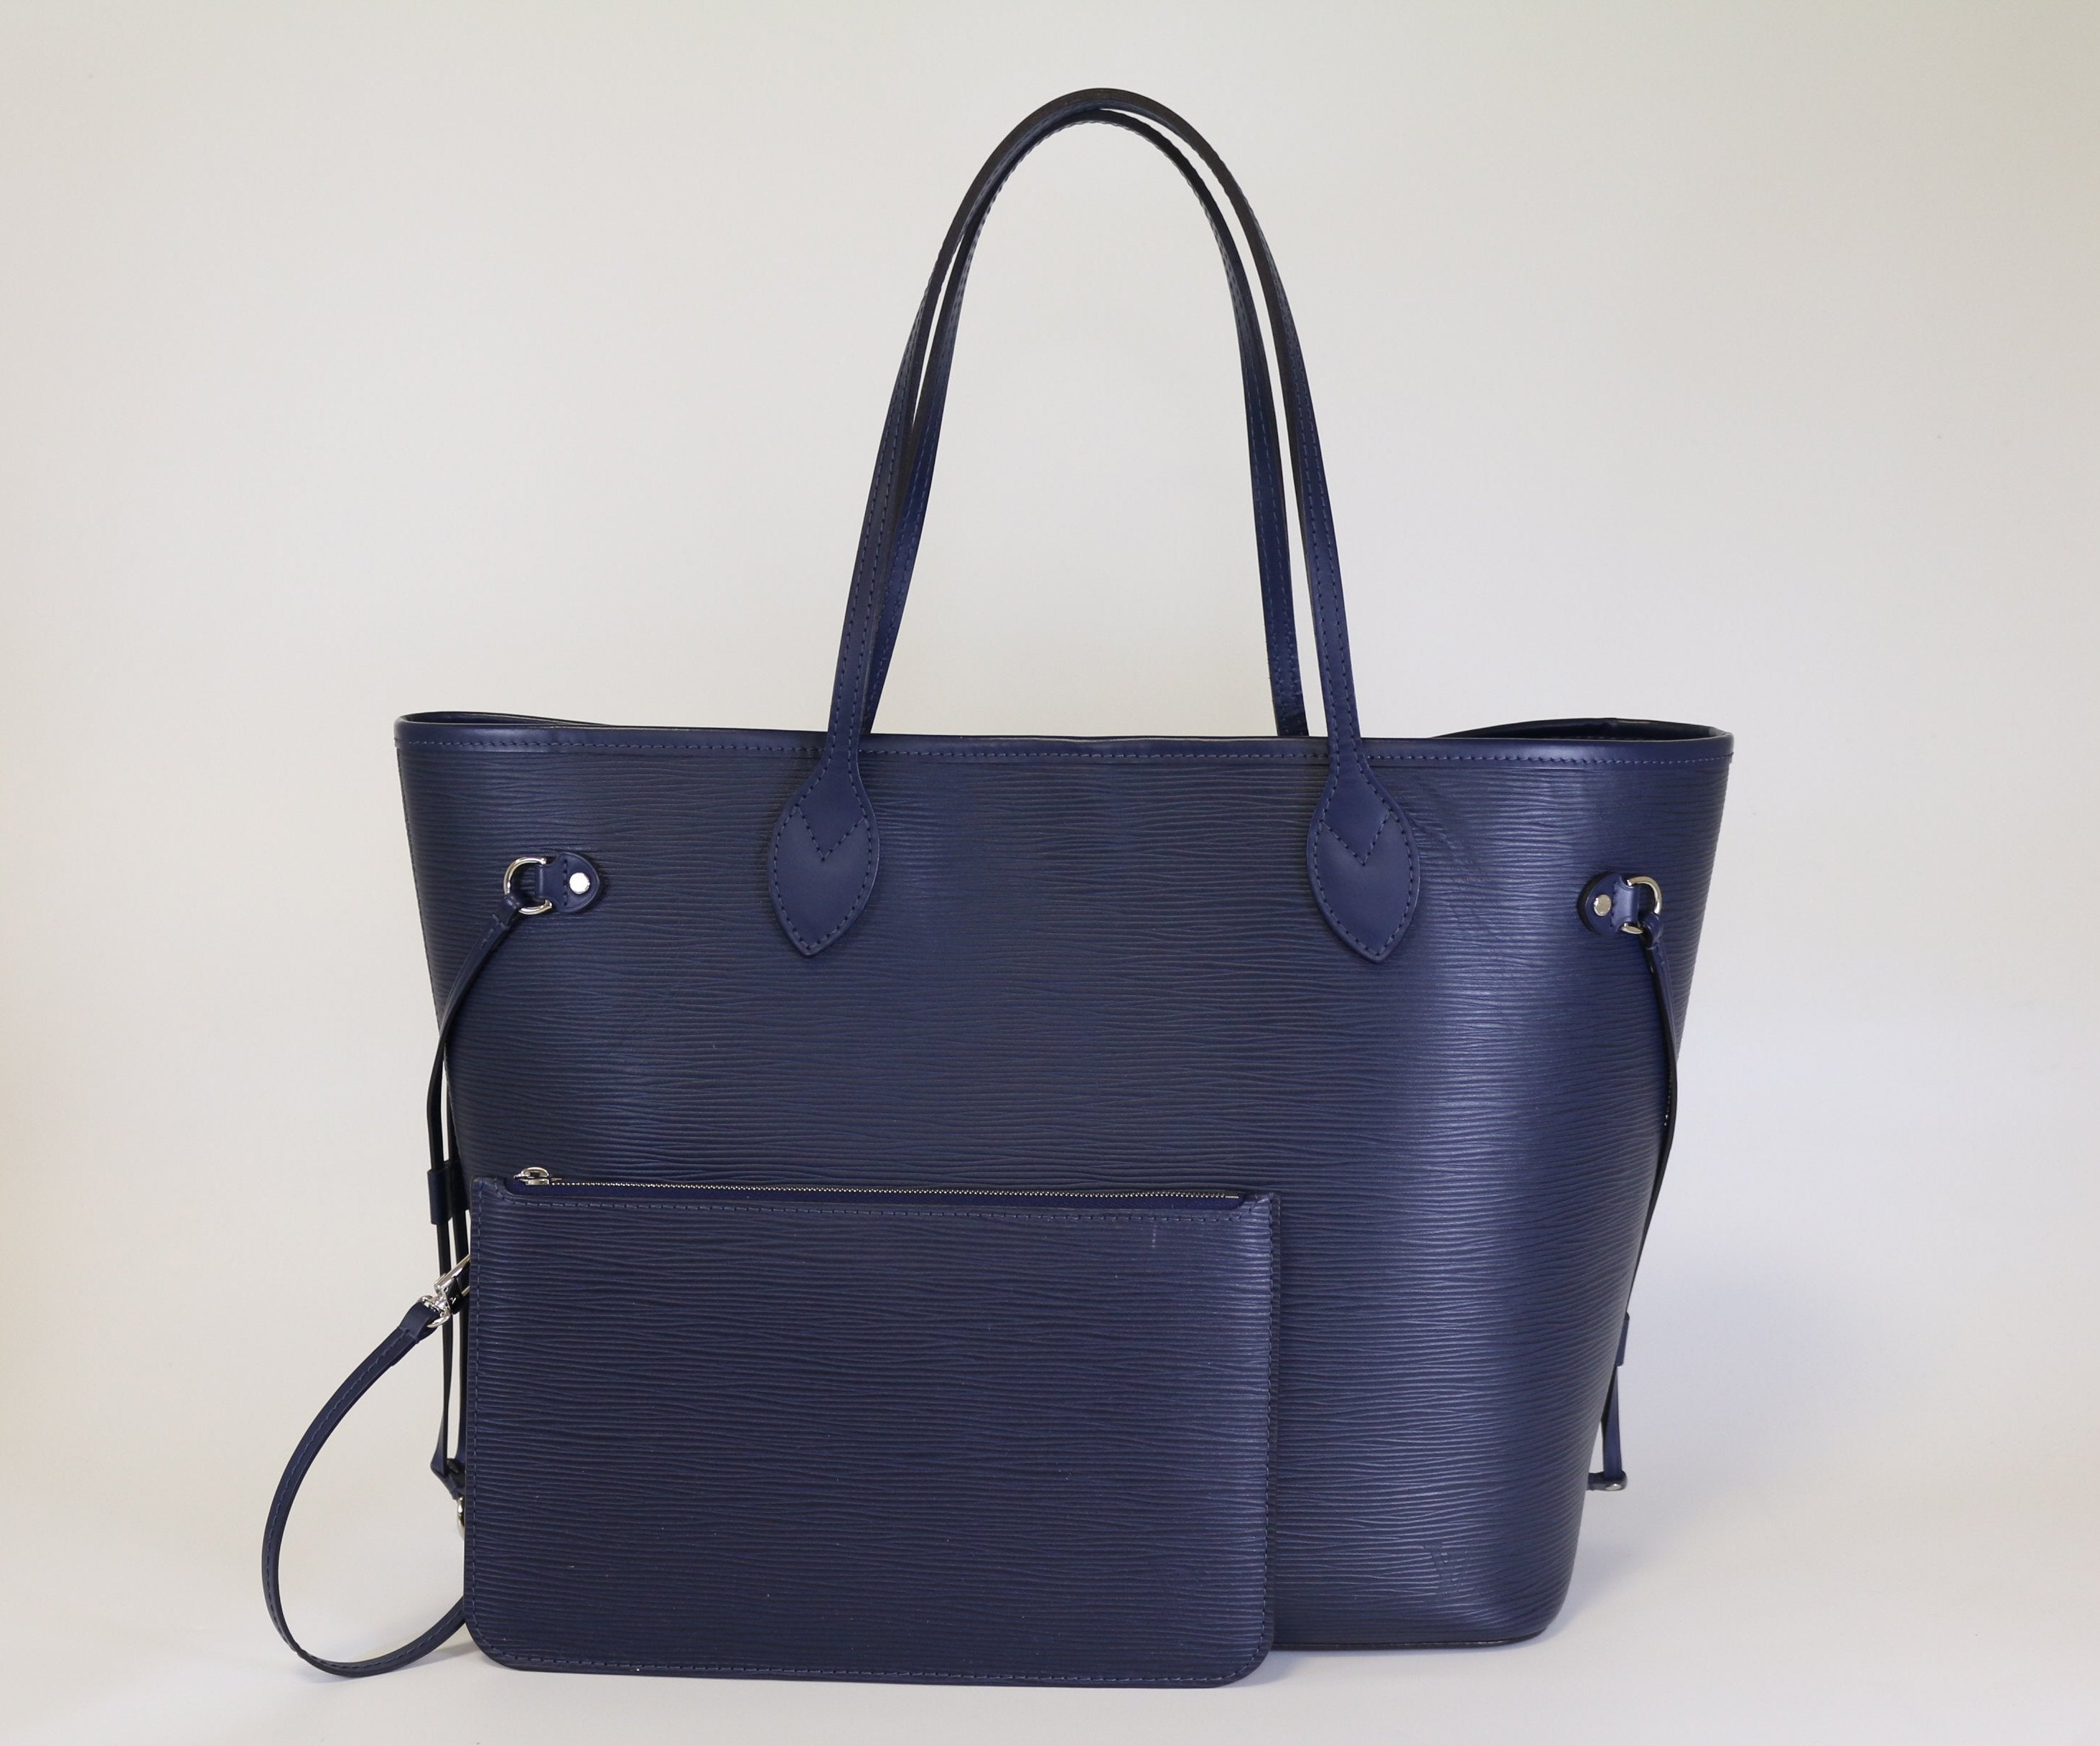 Indigo Epi Leather Neverfull MM